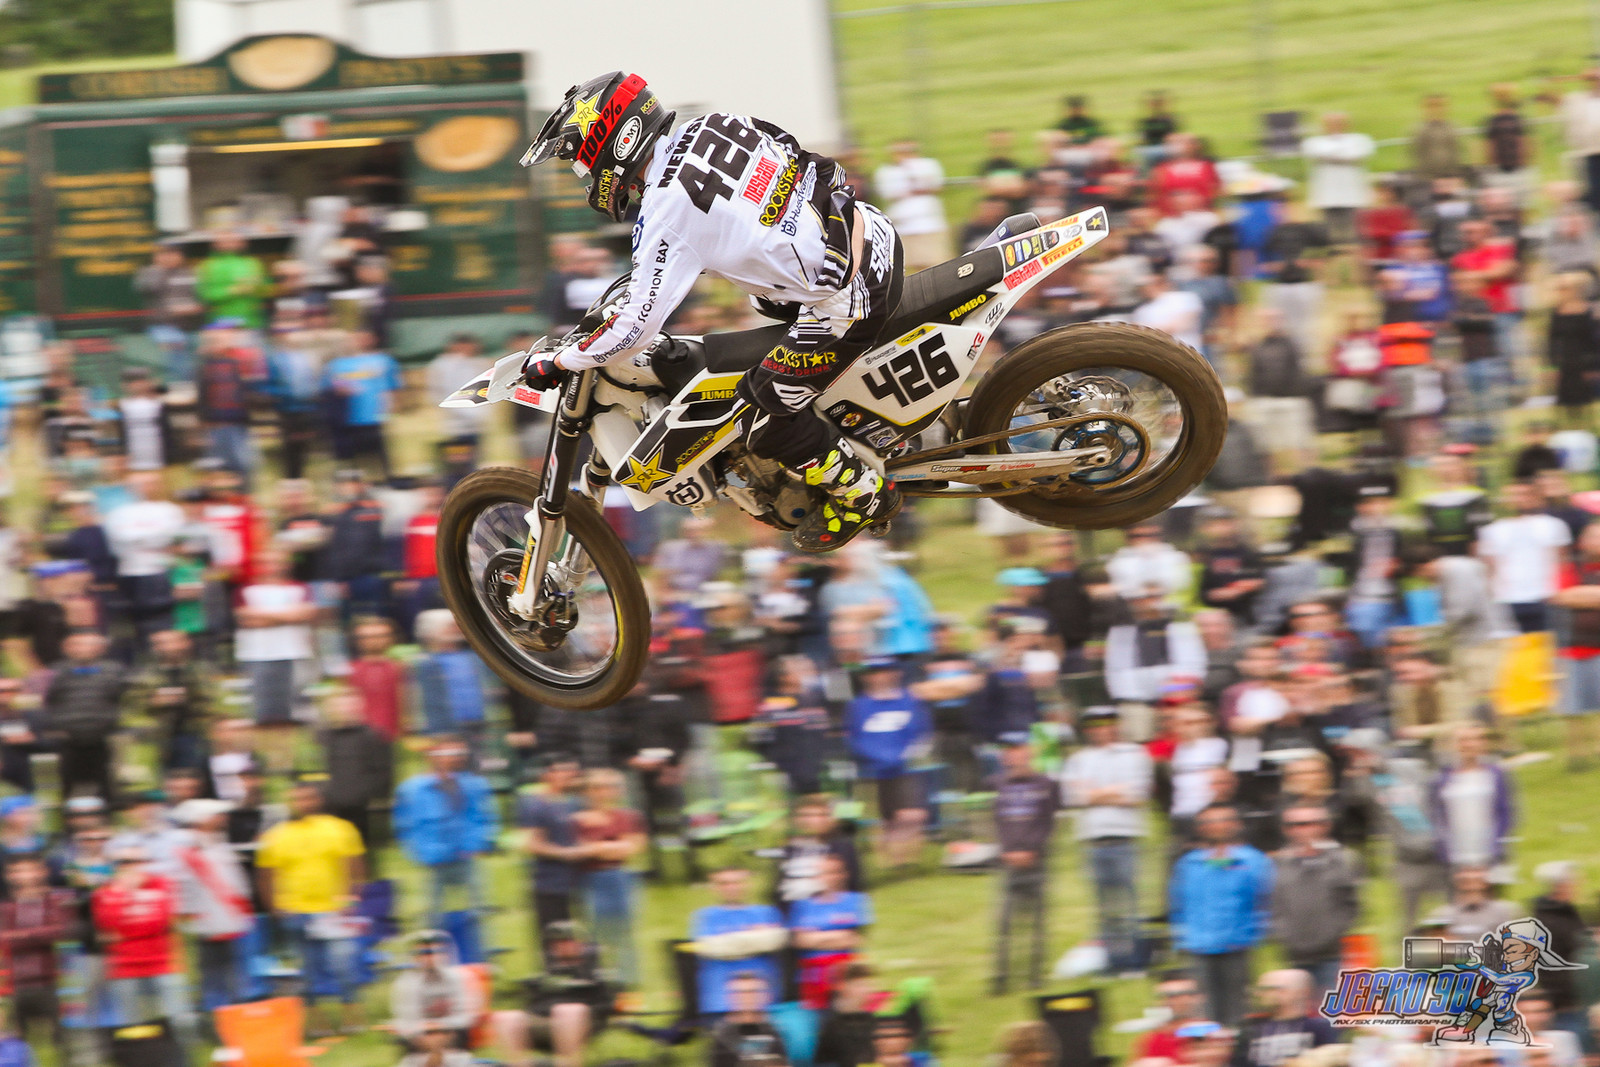 Conrad Mewse - Photo Gallery: MXGP of Great Britain - Motocross Pictures - Vital MX